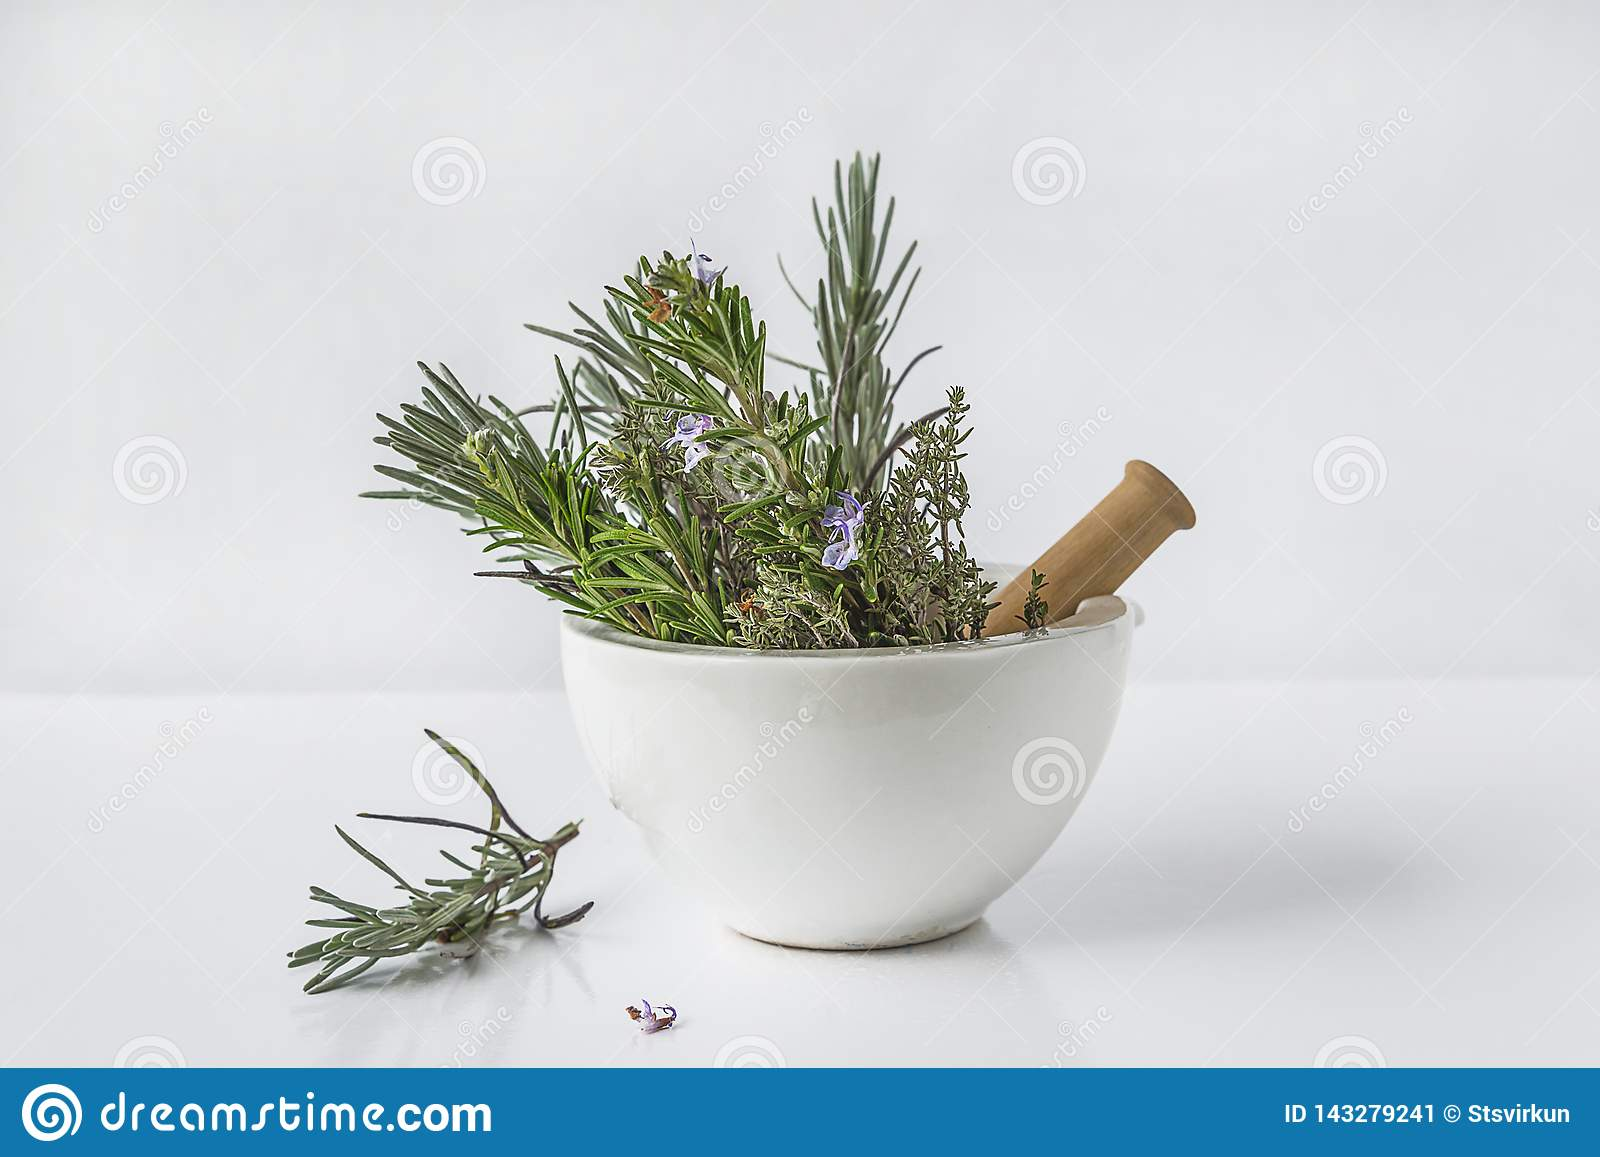 Aromatic plant: lavender, rosemary, thyme in the white ceramic mortar with pestle on white background